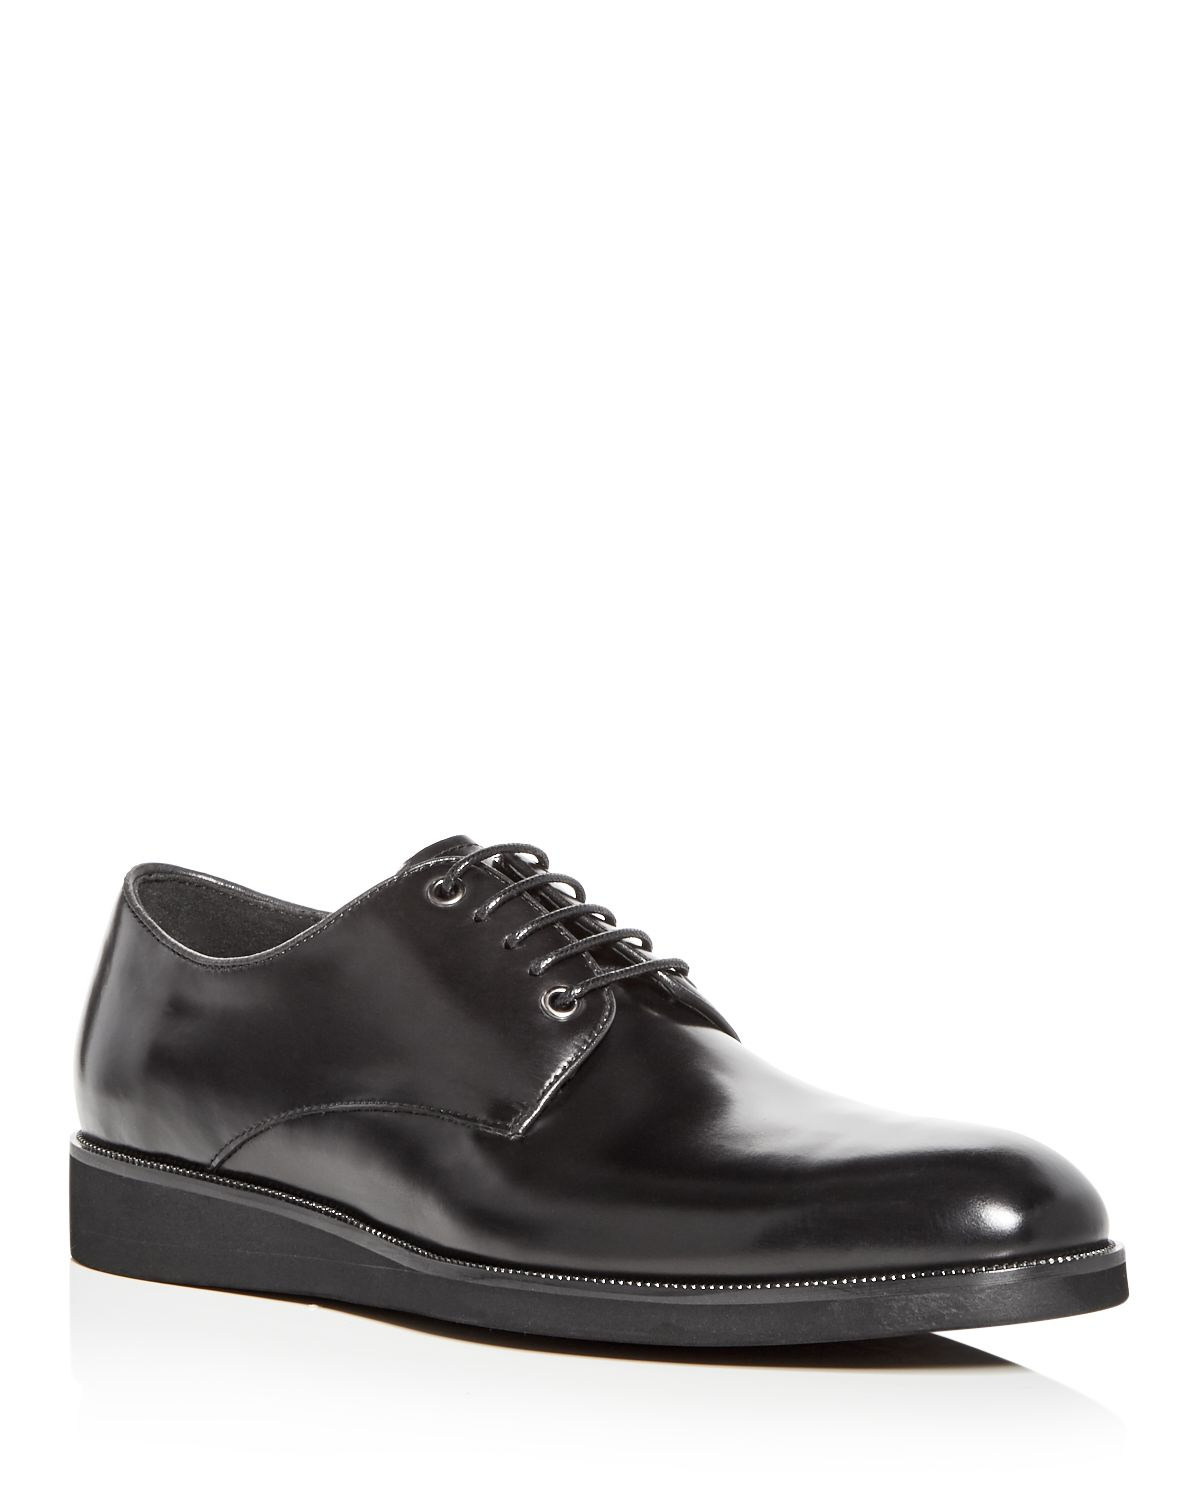 Karl Lagerfeld Men's Plain Toe Oxford